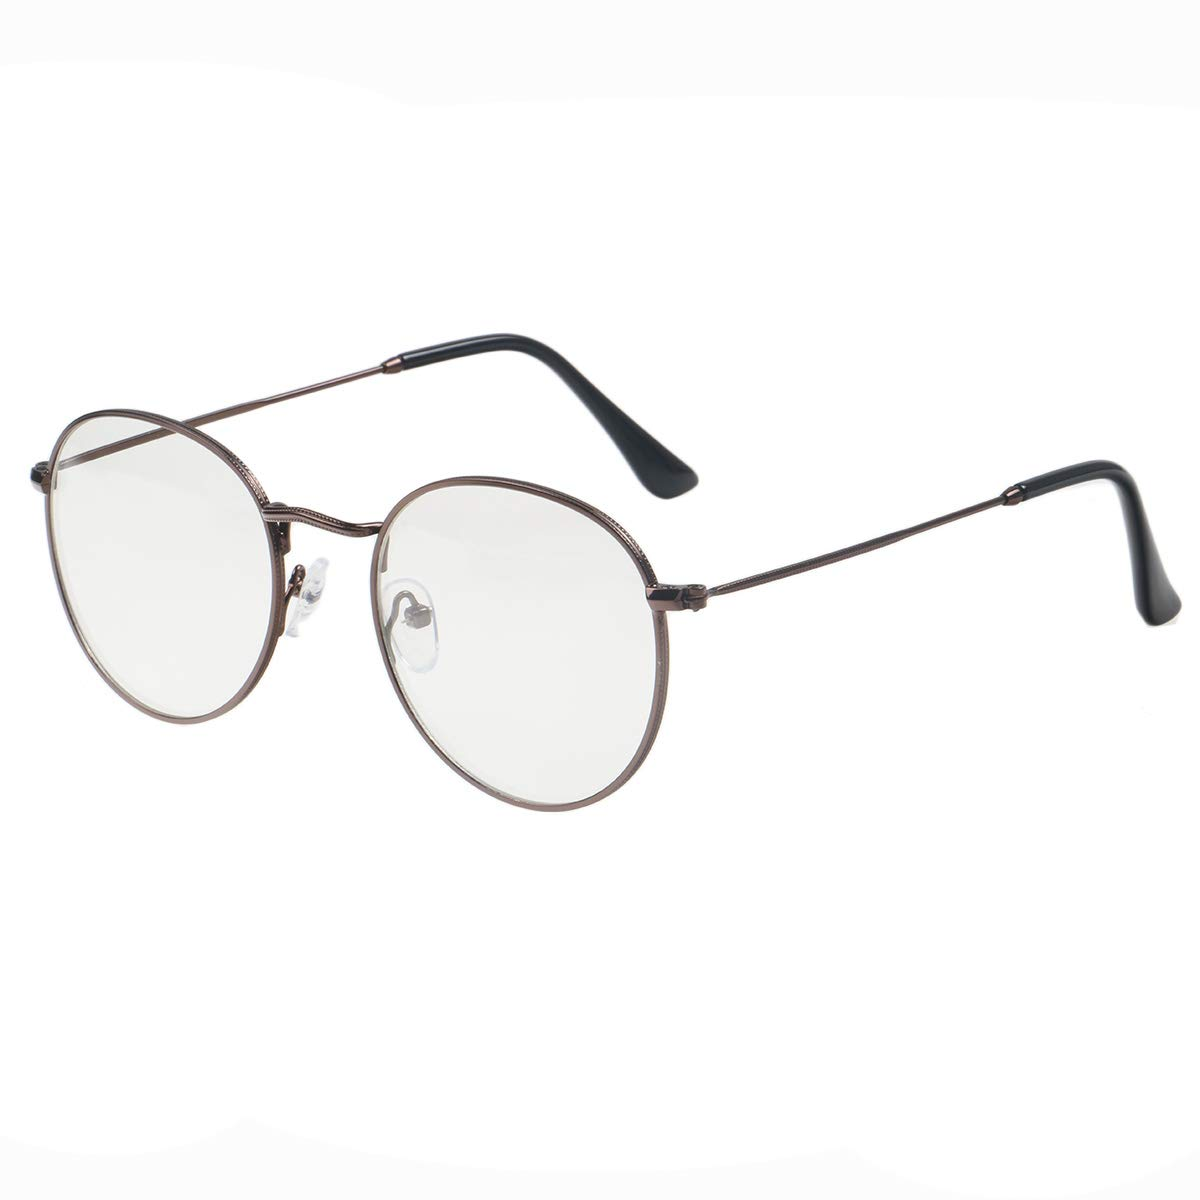 Simvey Classic Vintage Round Circle Metal Glasses Frame Clear Lens 7001